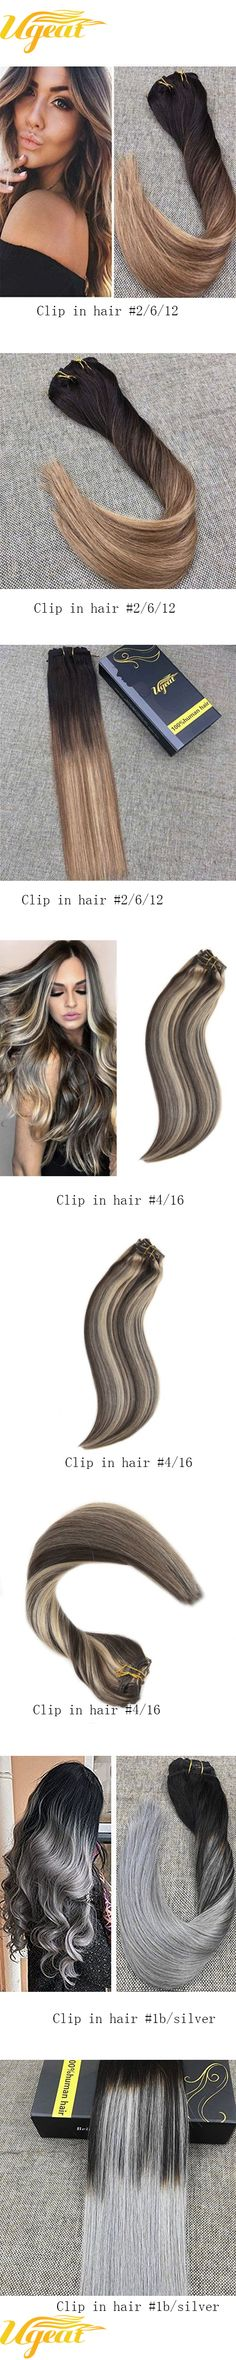 Ugeat clip in hair already had strong clips attached, easy to apply.Choose  Ugeat hair to be a unique lady#remy human hair #clip in remy human hair  #clip in ...